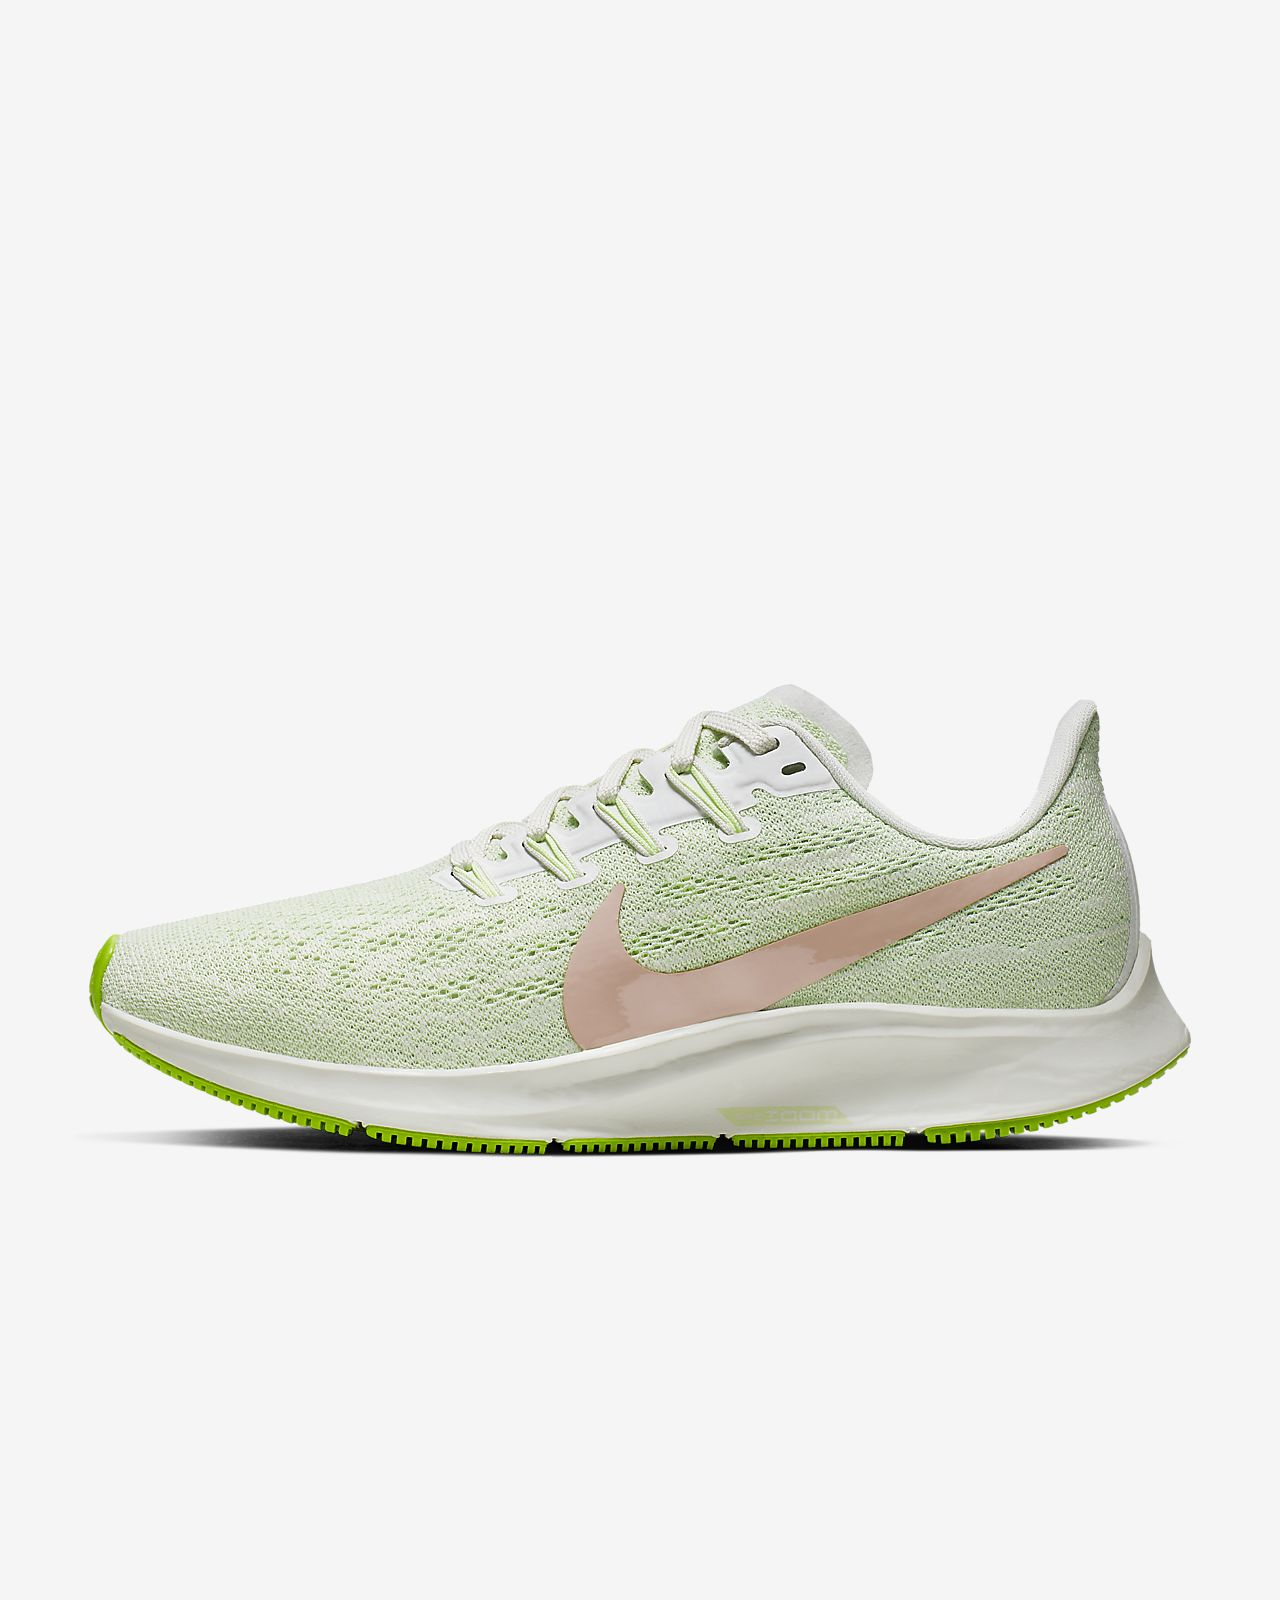 Nike Zoom Fly 3 Rise Women's Running Shoes FA19